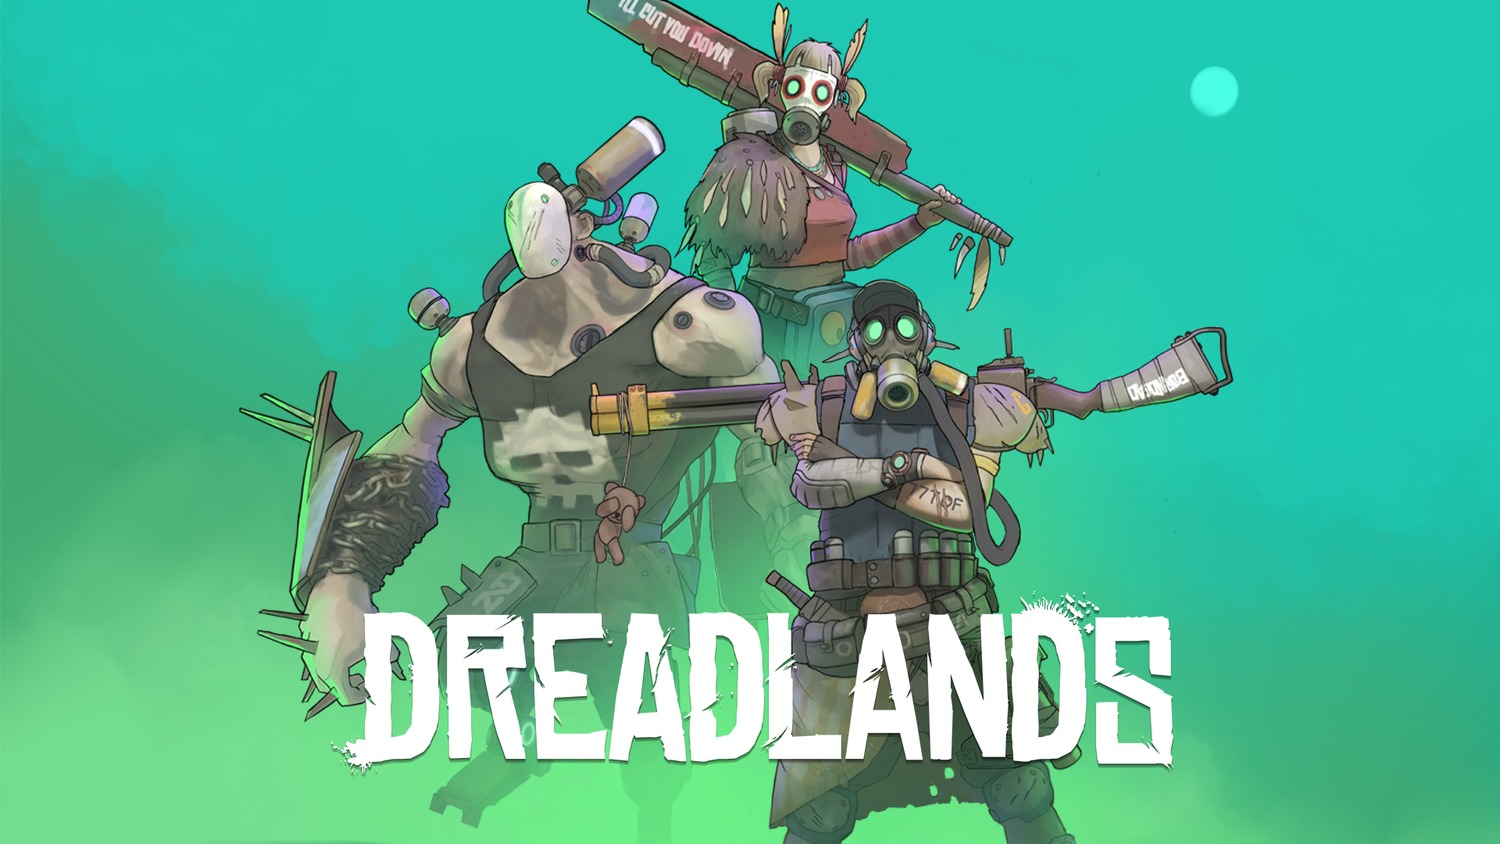 Dreadlands Is Also An MMO Besides Being A Turn-Based Tactical Game